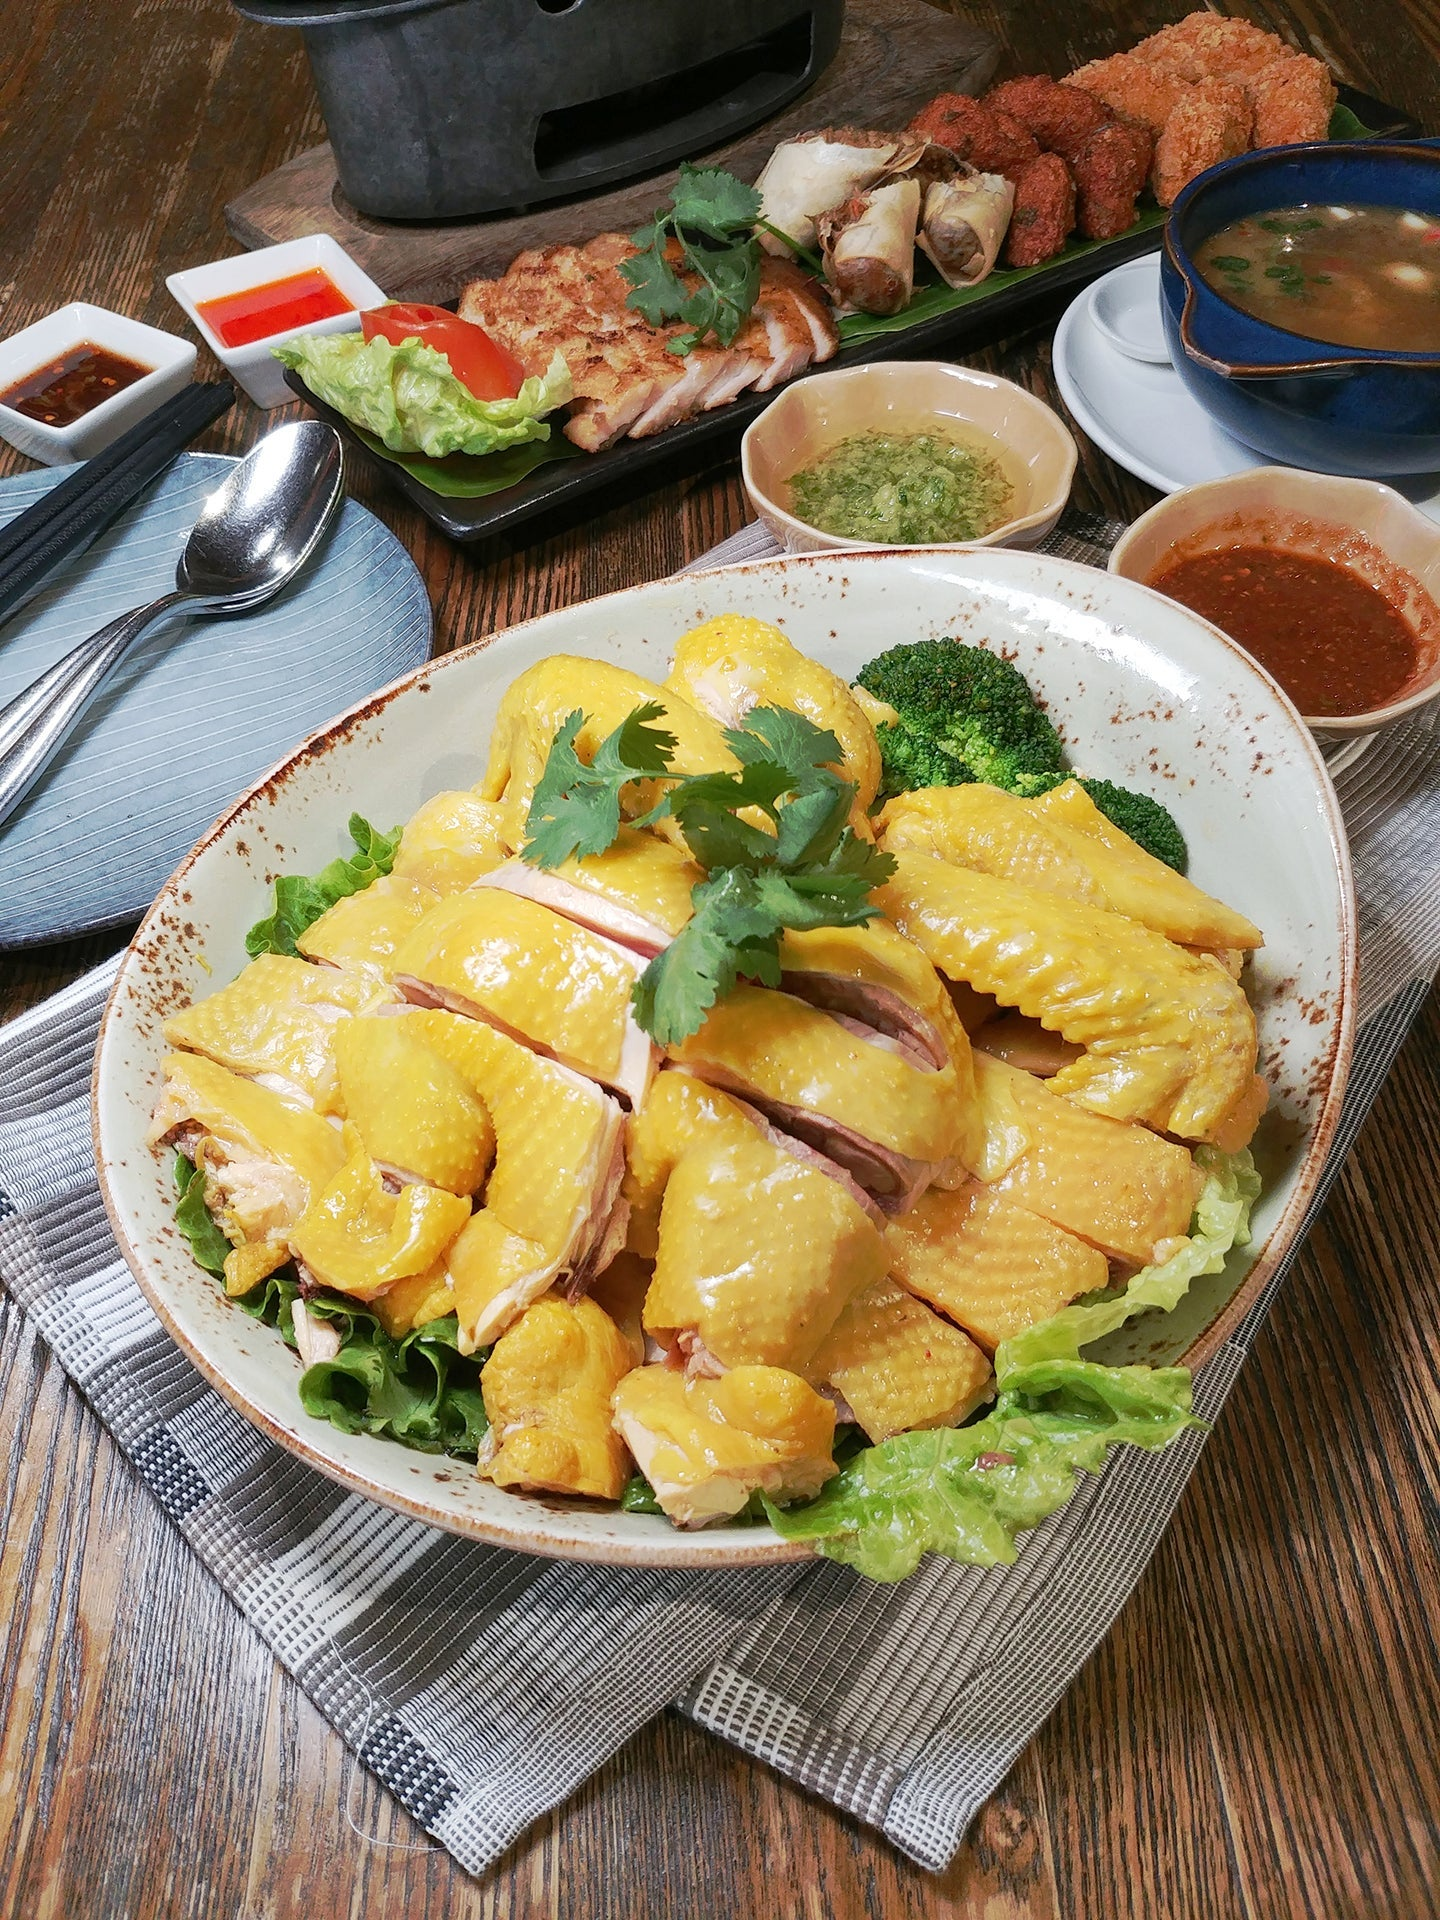 Thai Orchids Café & Bar 泰‧蘭花 delivery from KowloonBay 九龍灣 - Order with Deliveroo